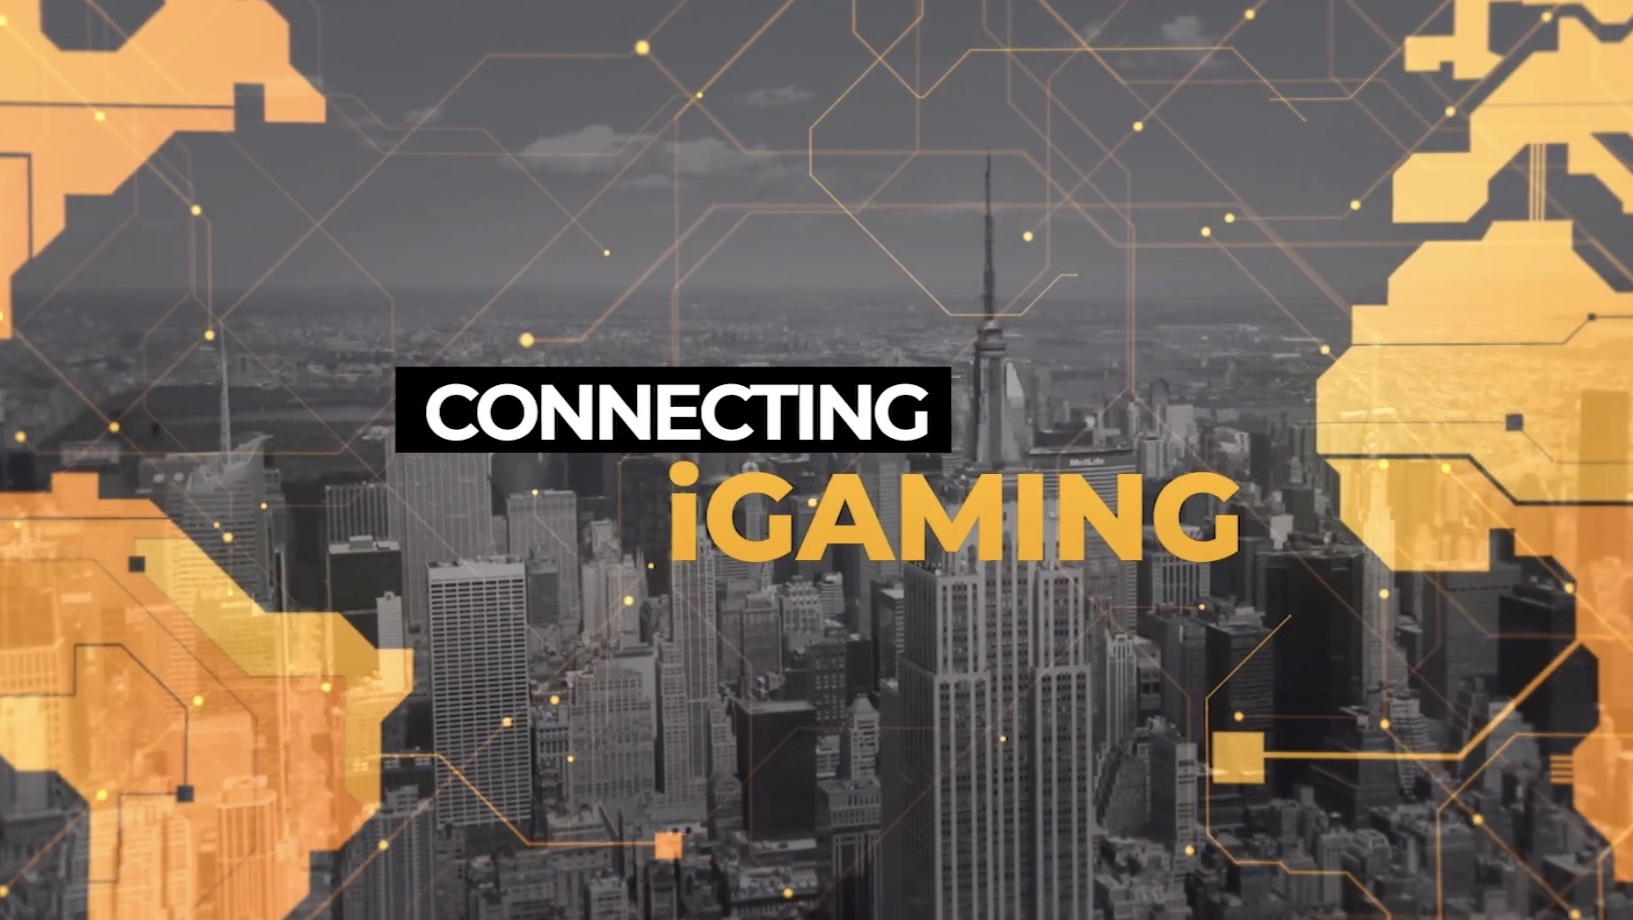 BSV BLOCKCHAIN: IGNITE THE POWER OF DATA FOR IGAMING